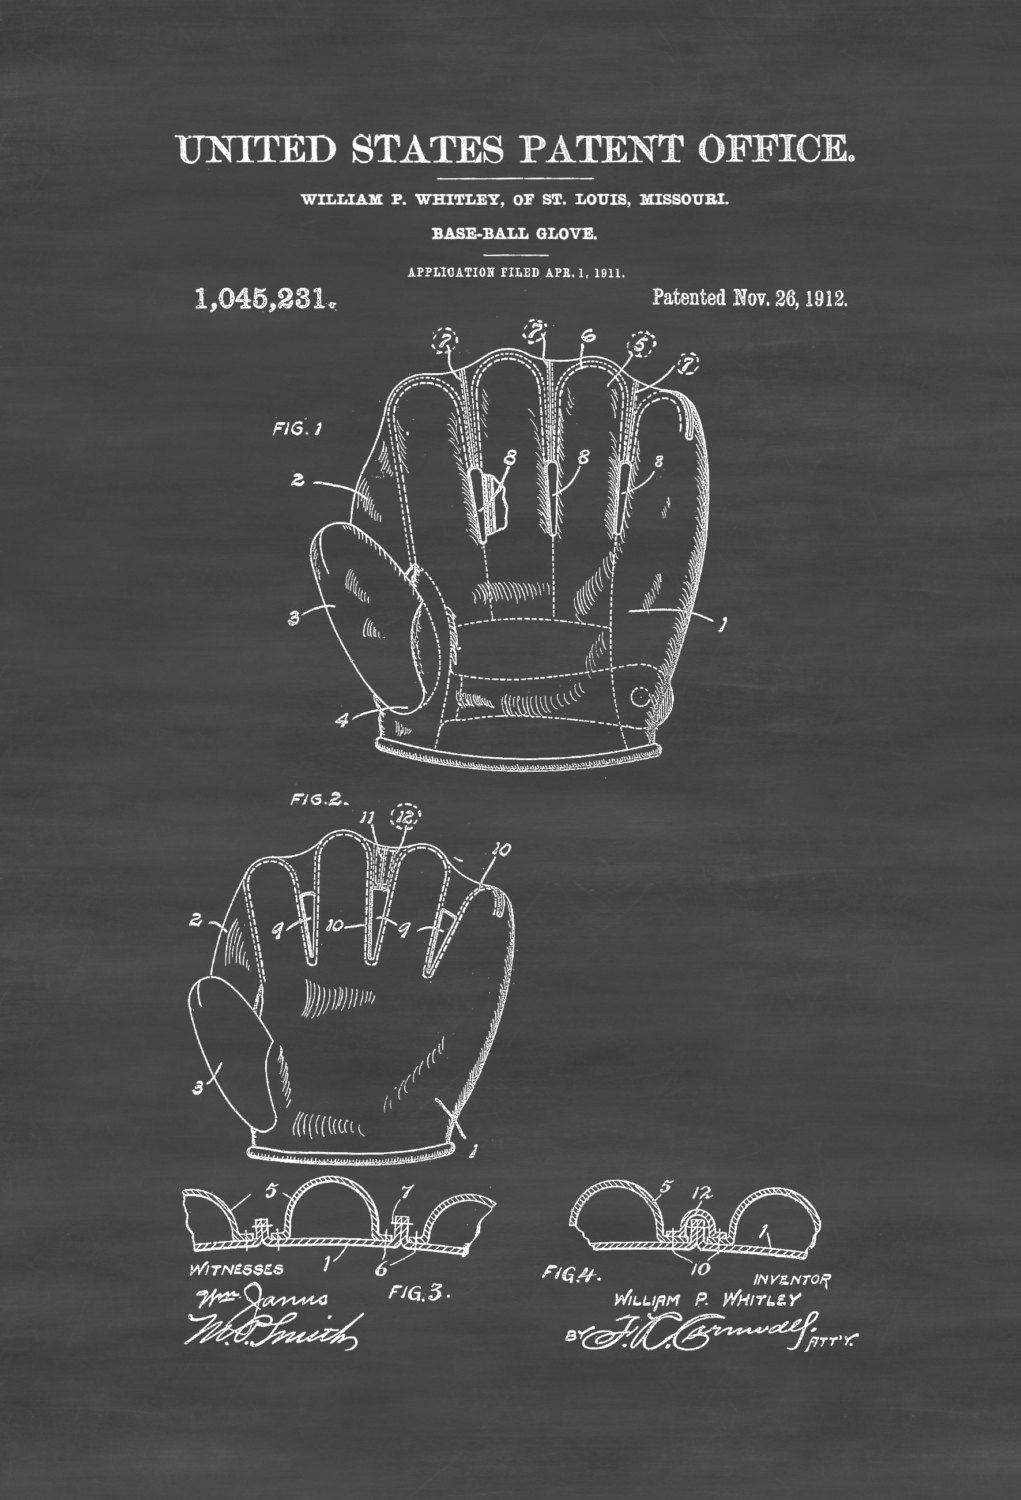 Baseball glove patent patent print wall decor baseball art new to patentsasprints on etsy baseball glove patent patent print wall decor baseball art glove patent baseball fan gift baseball glove blueprint usd malvernweather Image collections